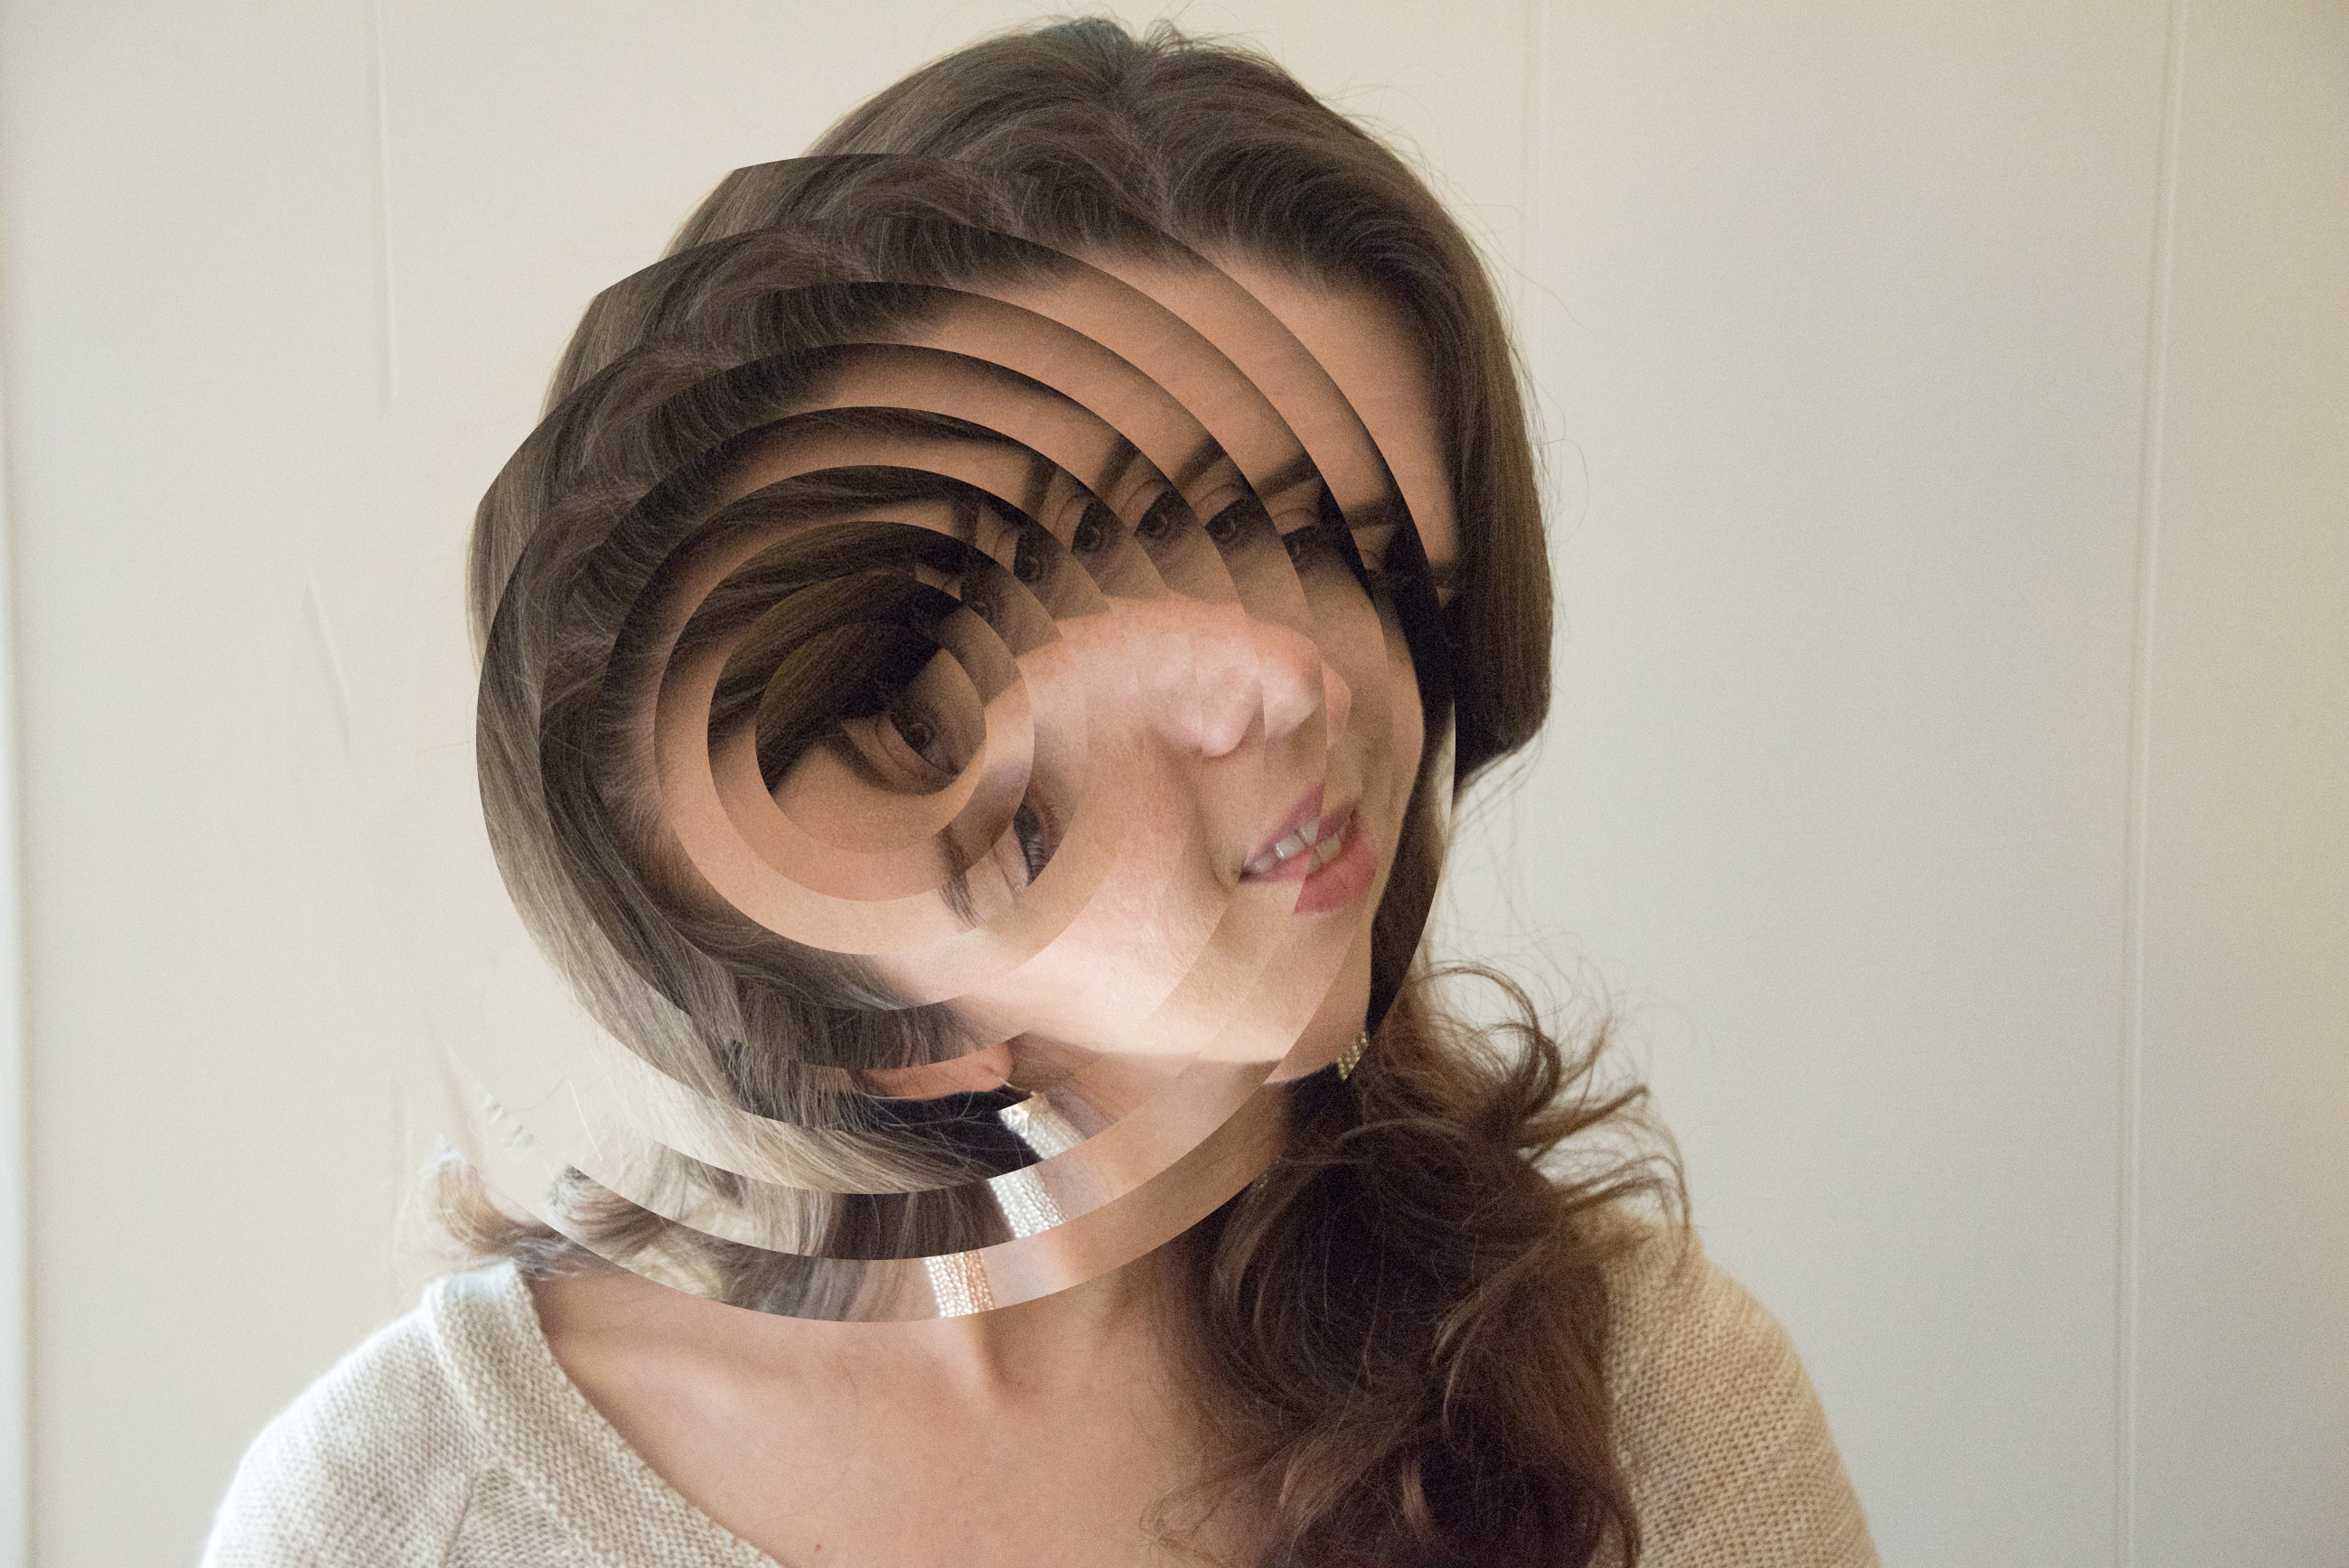 How to make circle photo collage